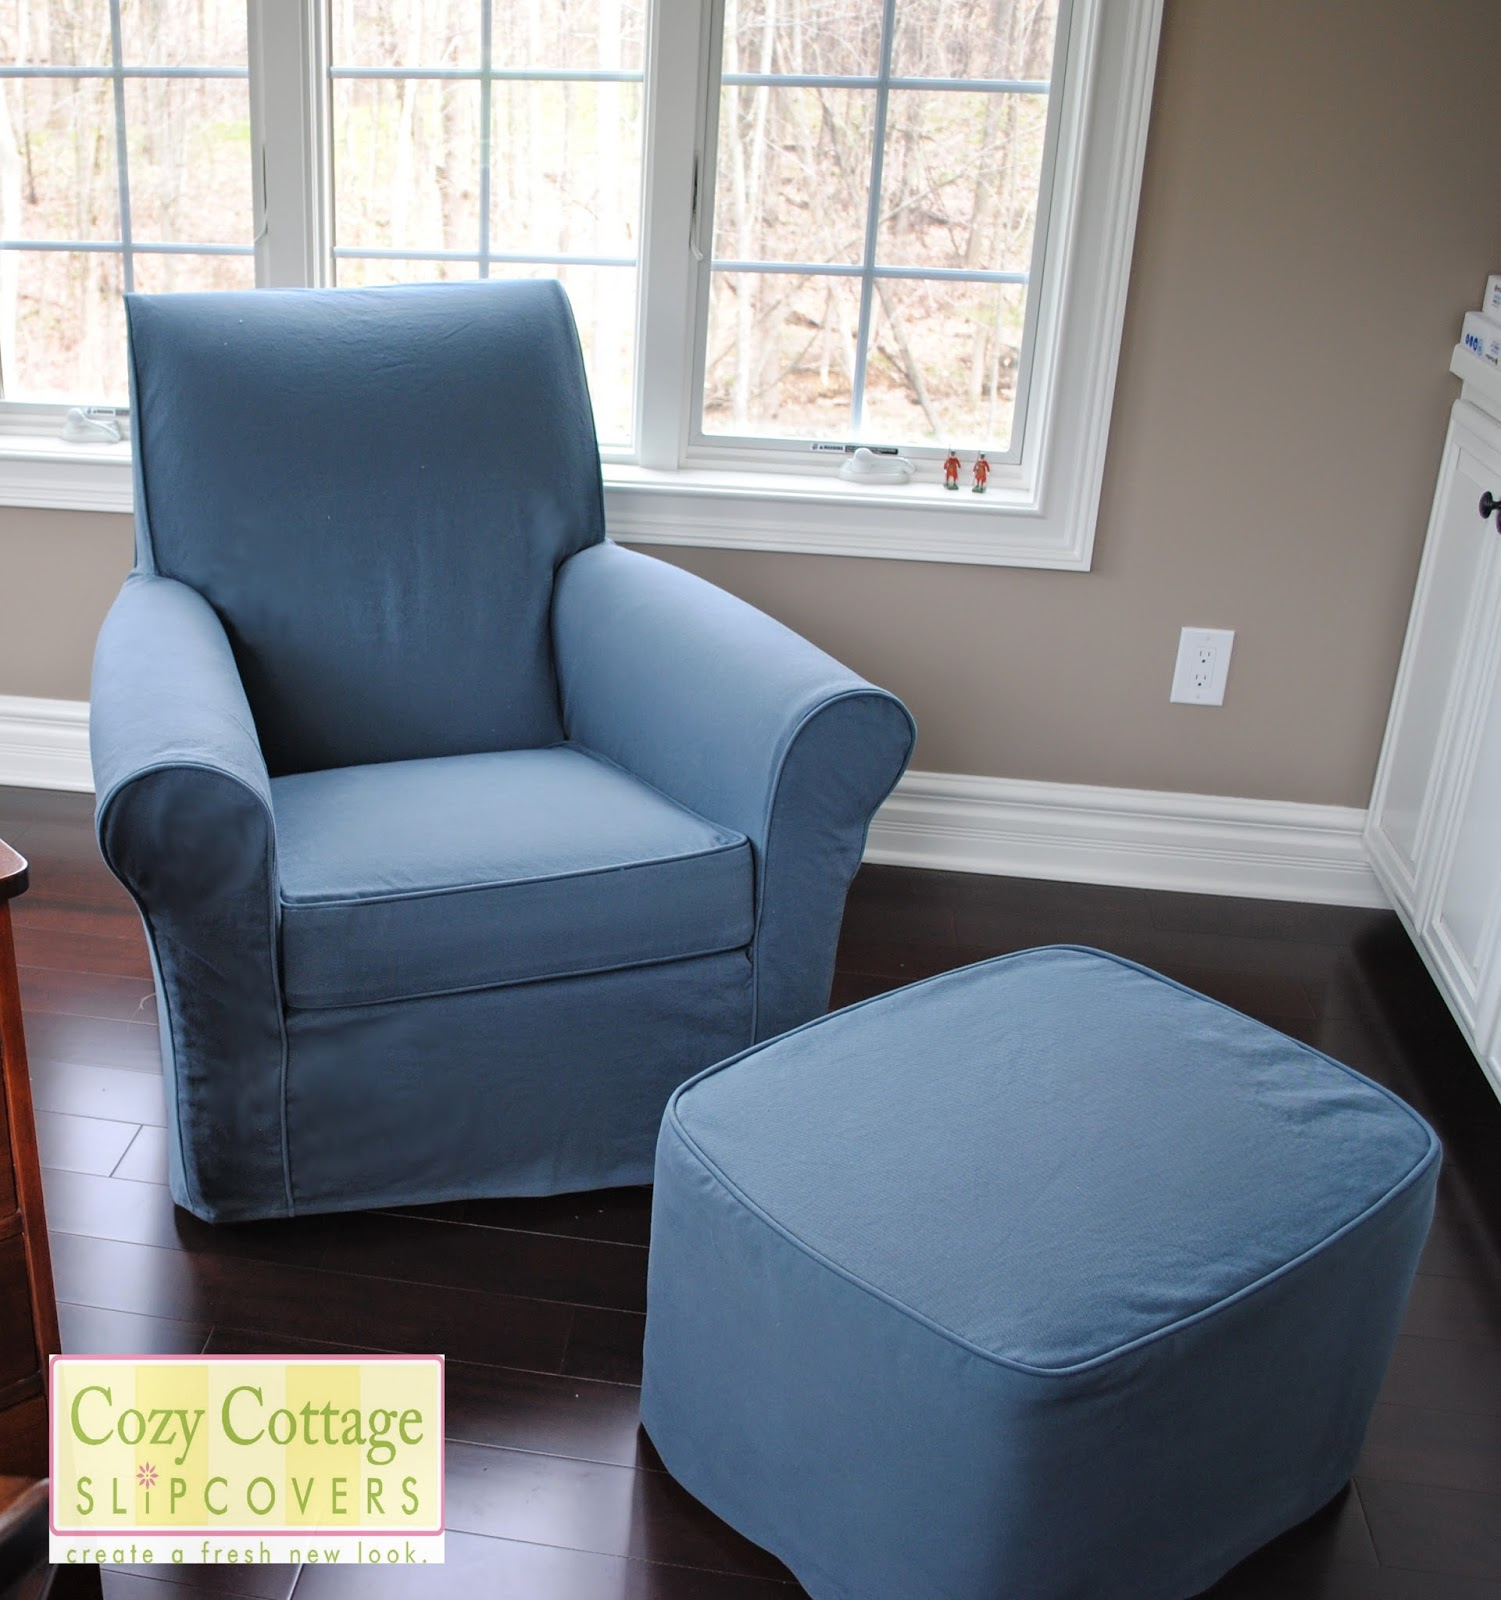 I really like the clean look of the slipcover with no skirt my customer preferred this look since the chair and ottoman would be in her husbands office